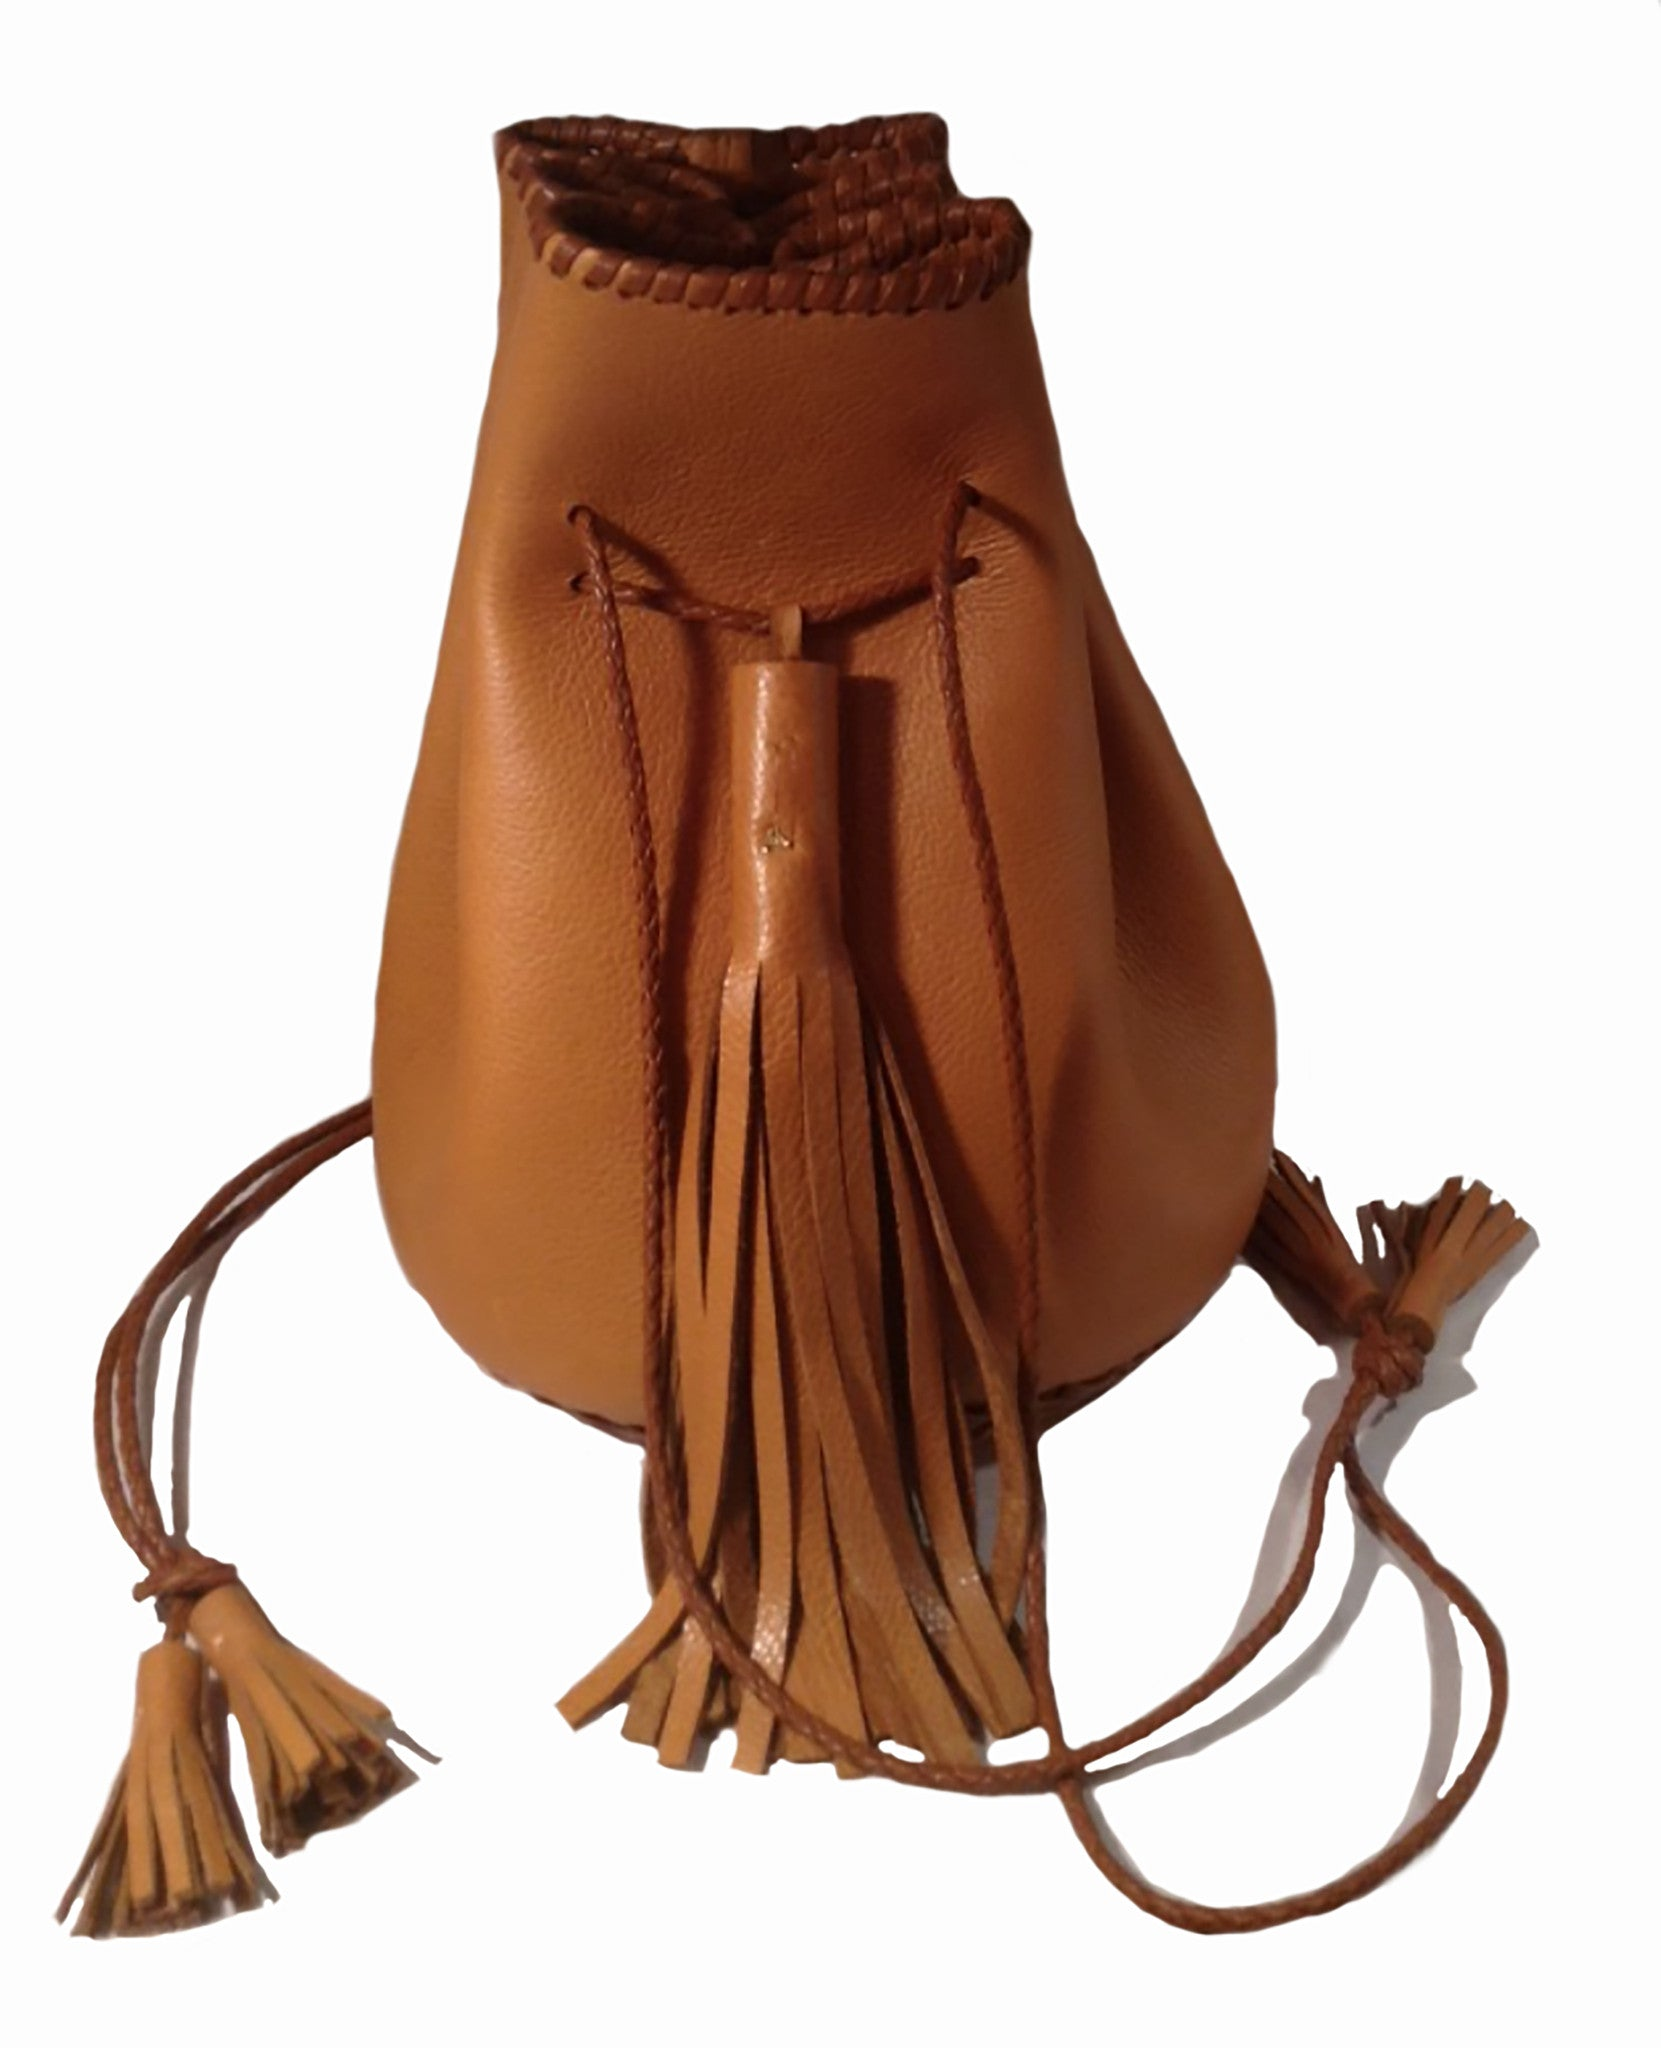 Canyon Light Carmel Brown Tan Leather Whipstitch Bullet Bag Wendy Nichol Handmade in NYC Leather Bucket Handbag light Brown